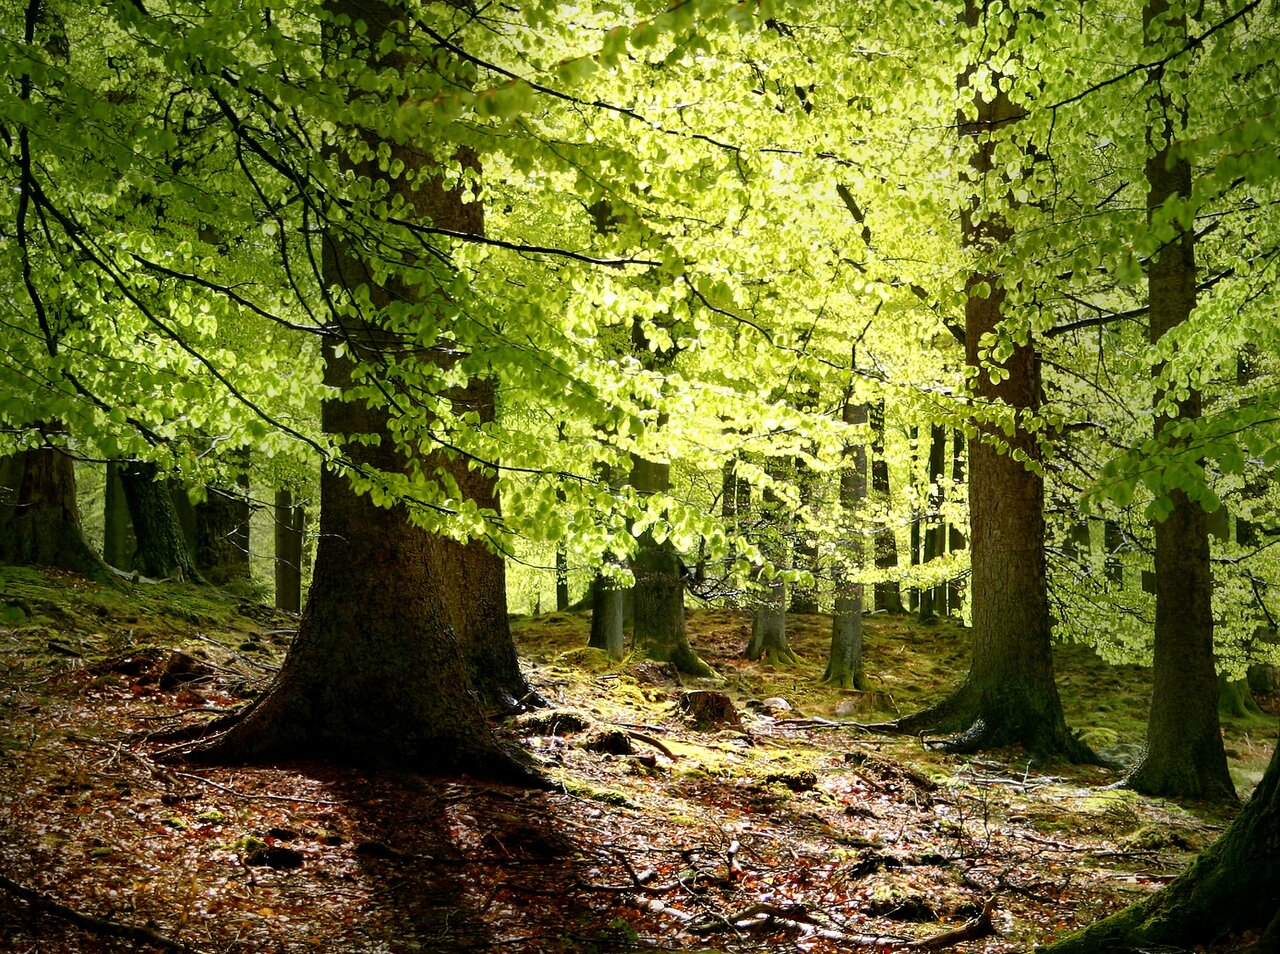 An image of a forest with bright green leaves